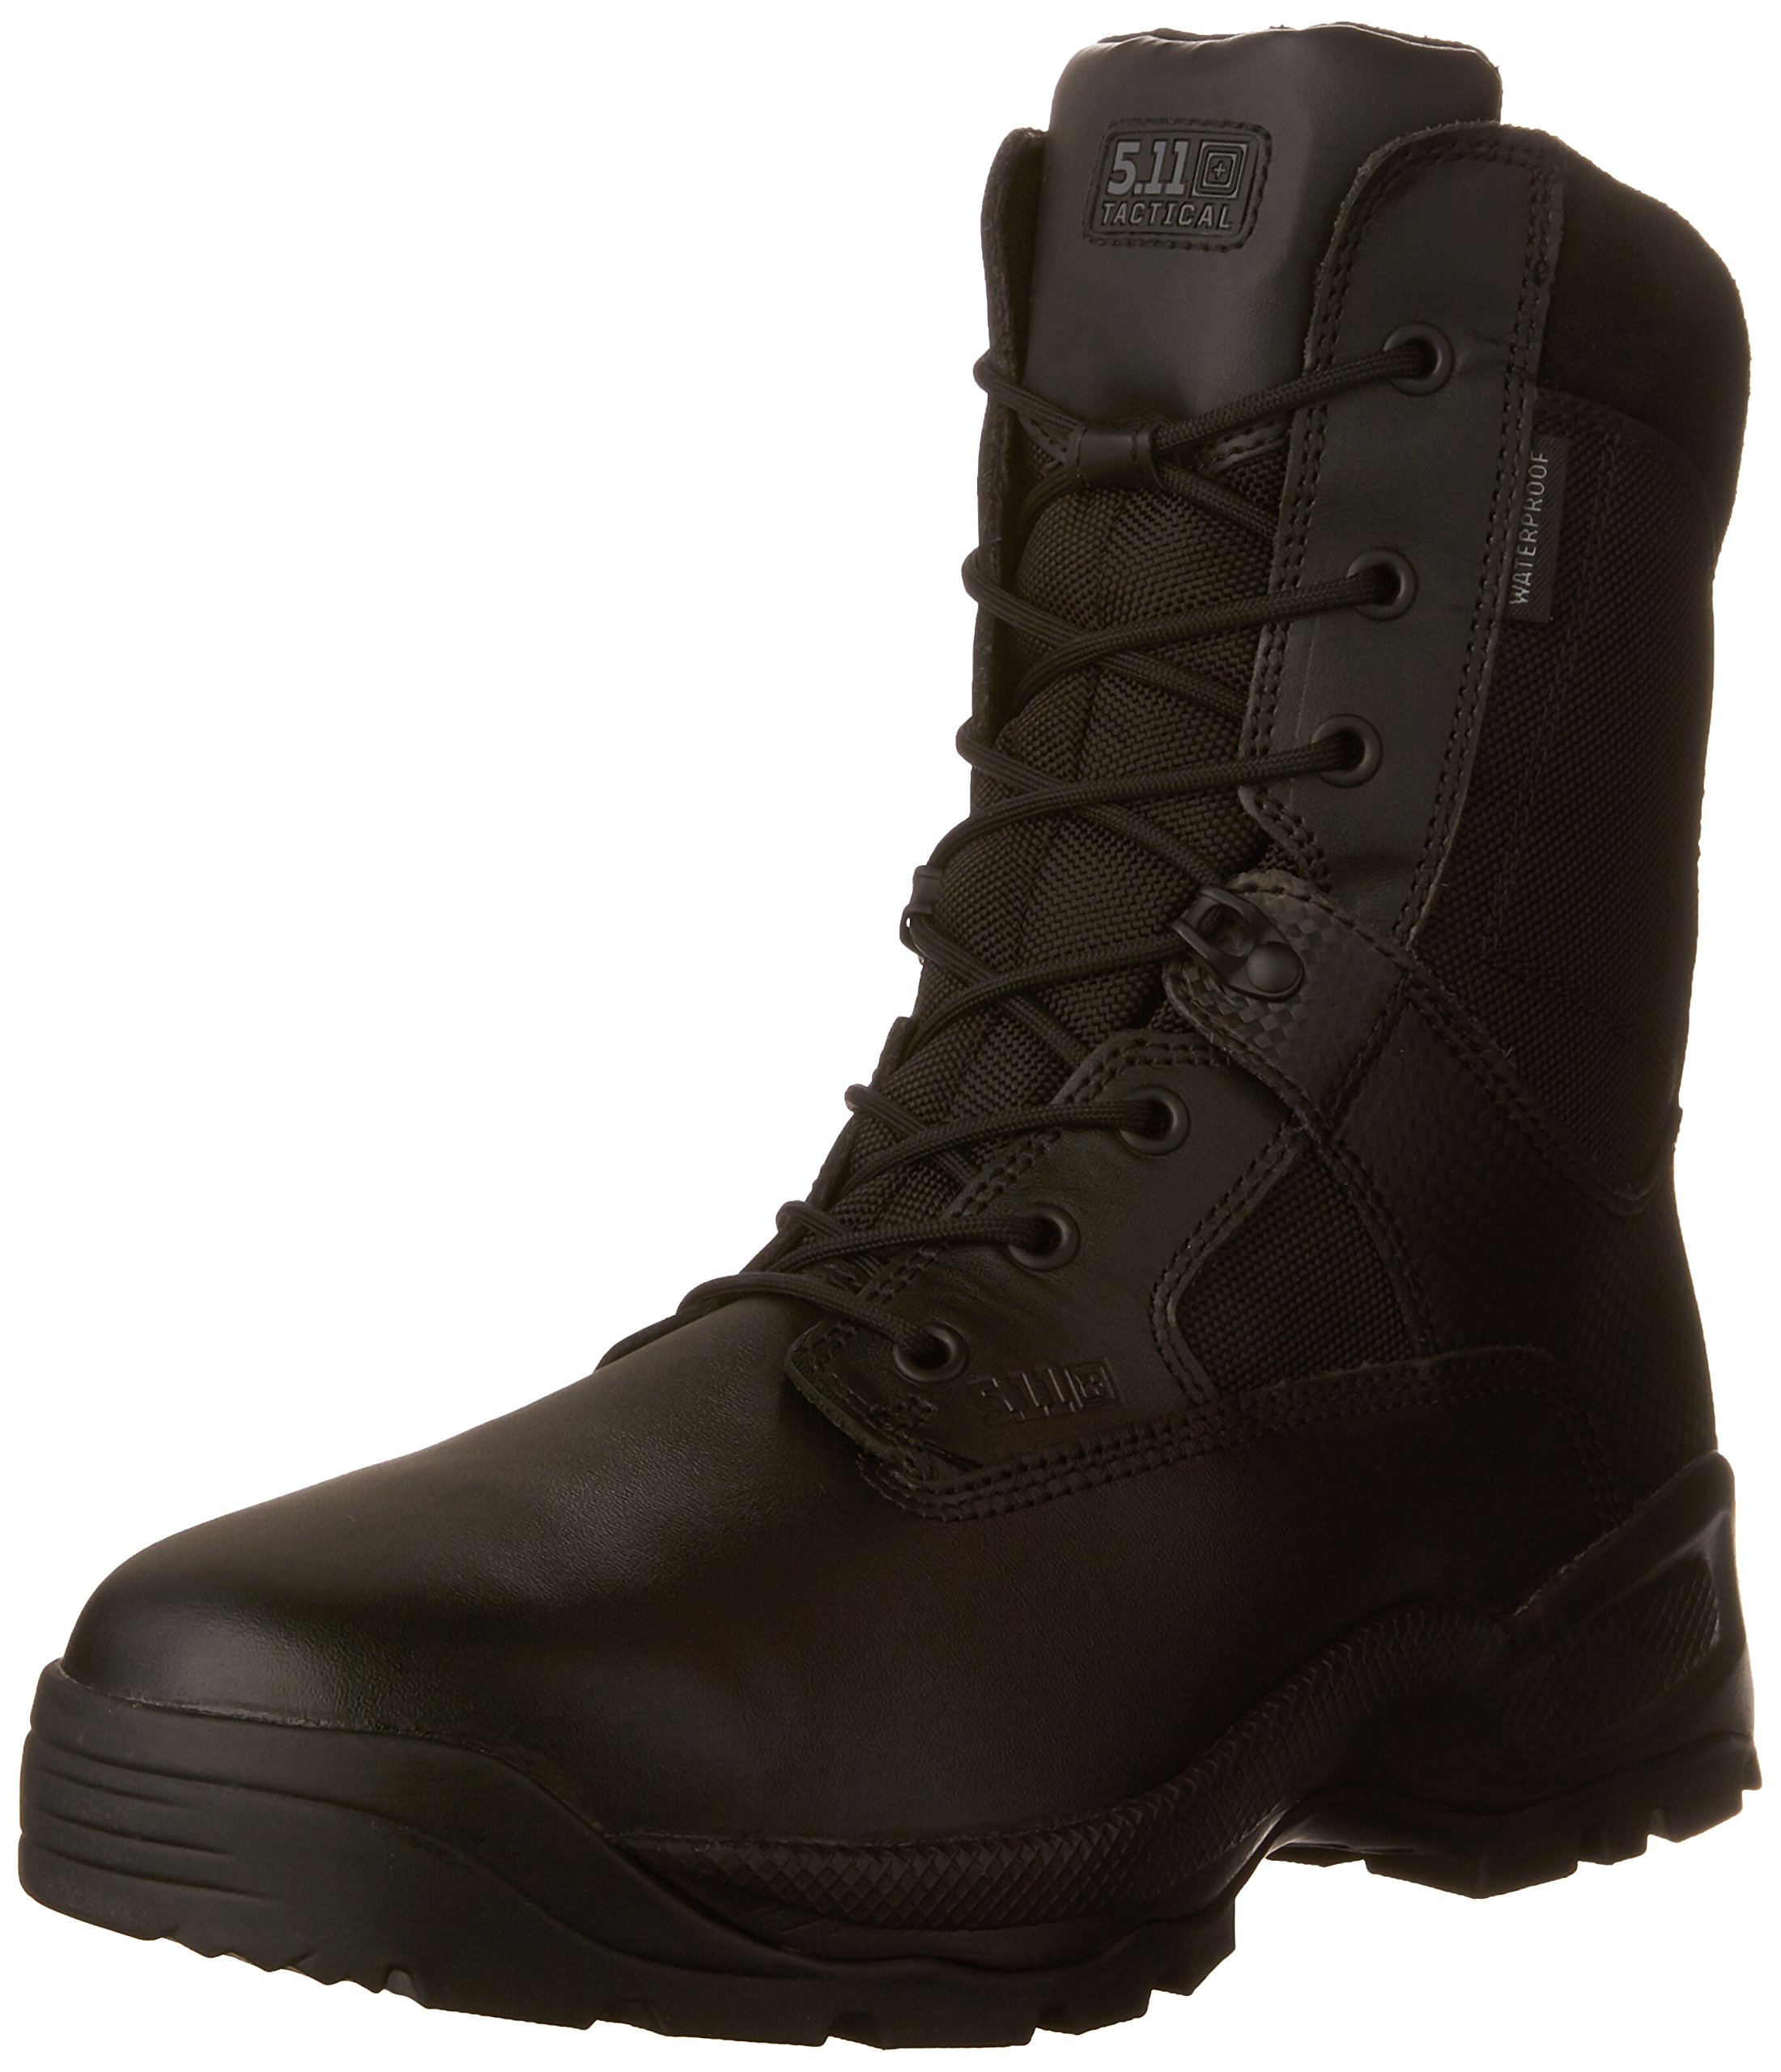 5.11 Men's ATAC Storm 8In Boot-U, Black, 10 D(M) US